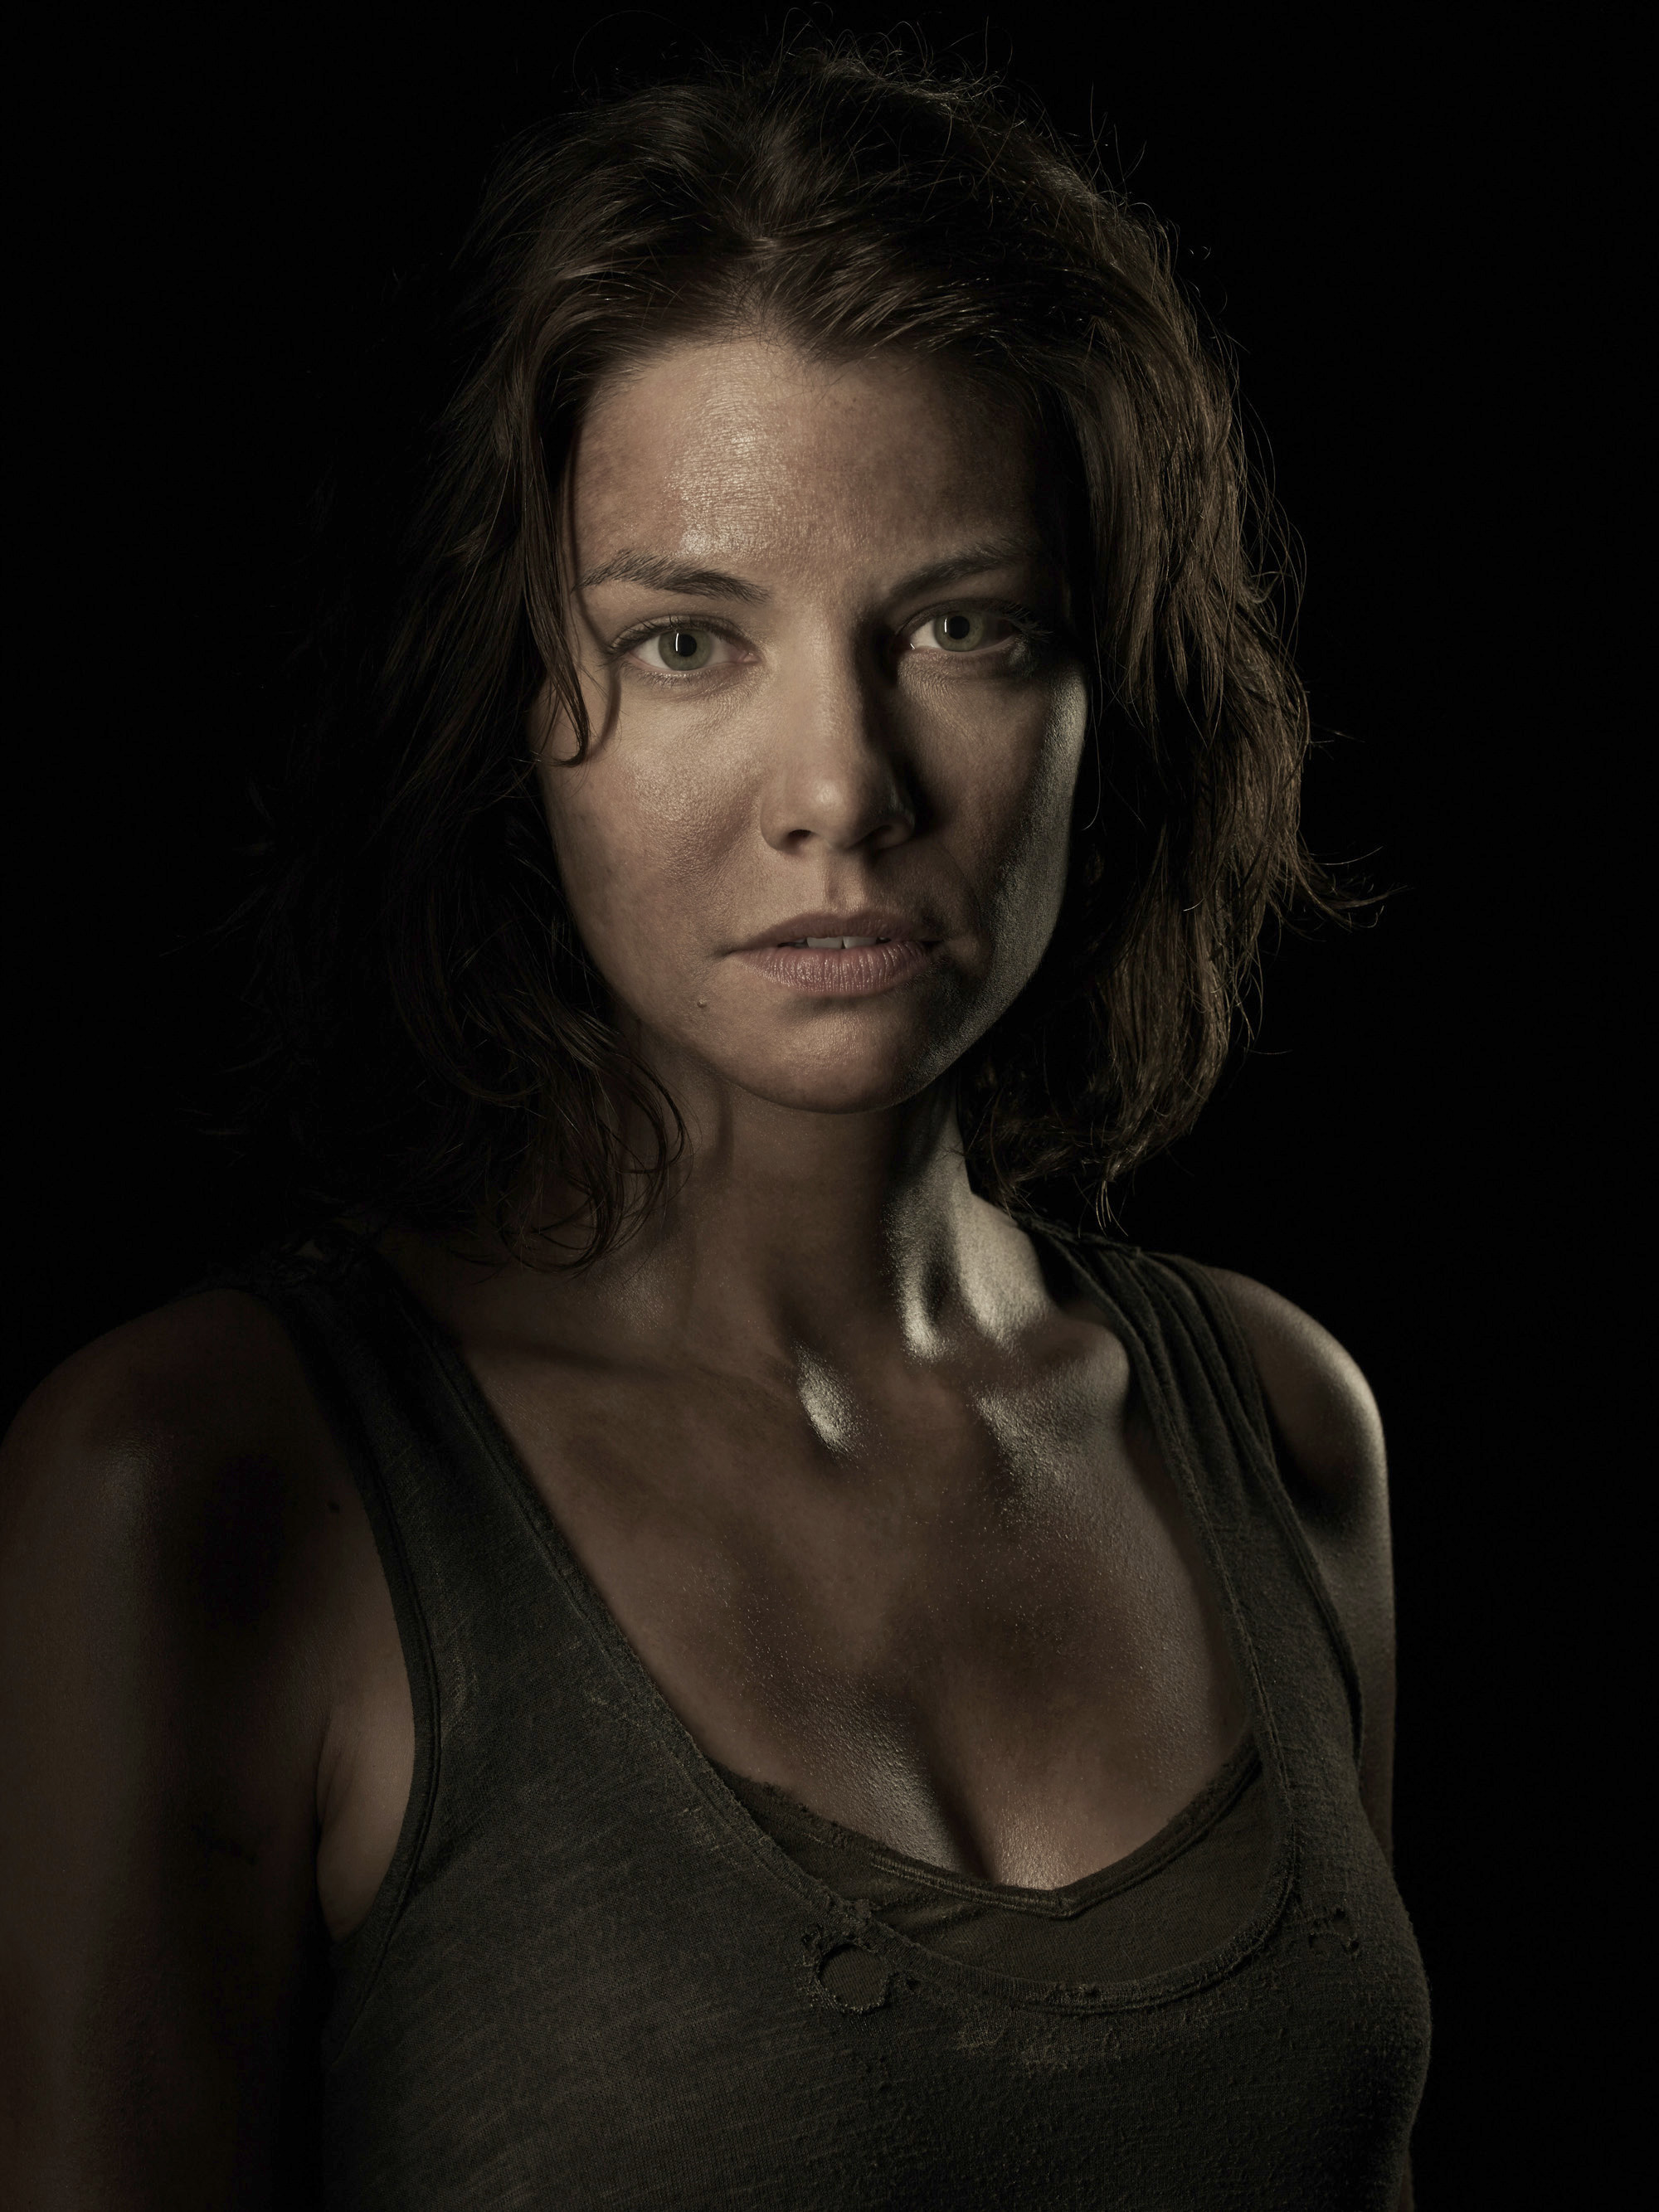 Lauren Cohan confirma que continuará em The Walking Dead